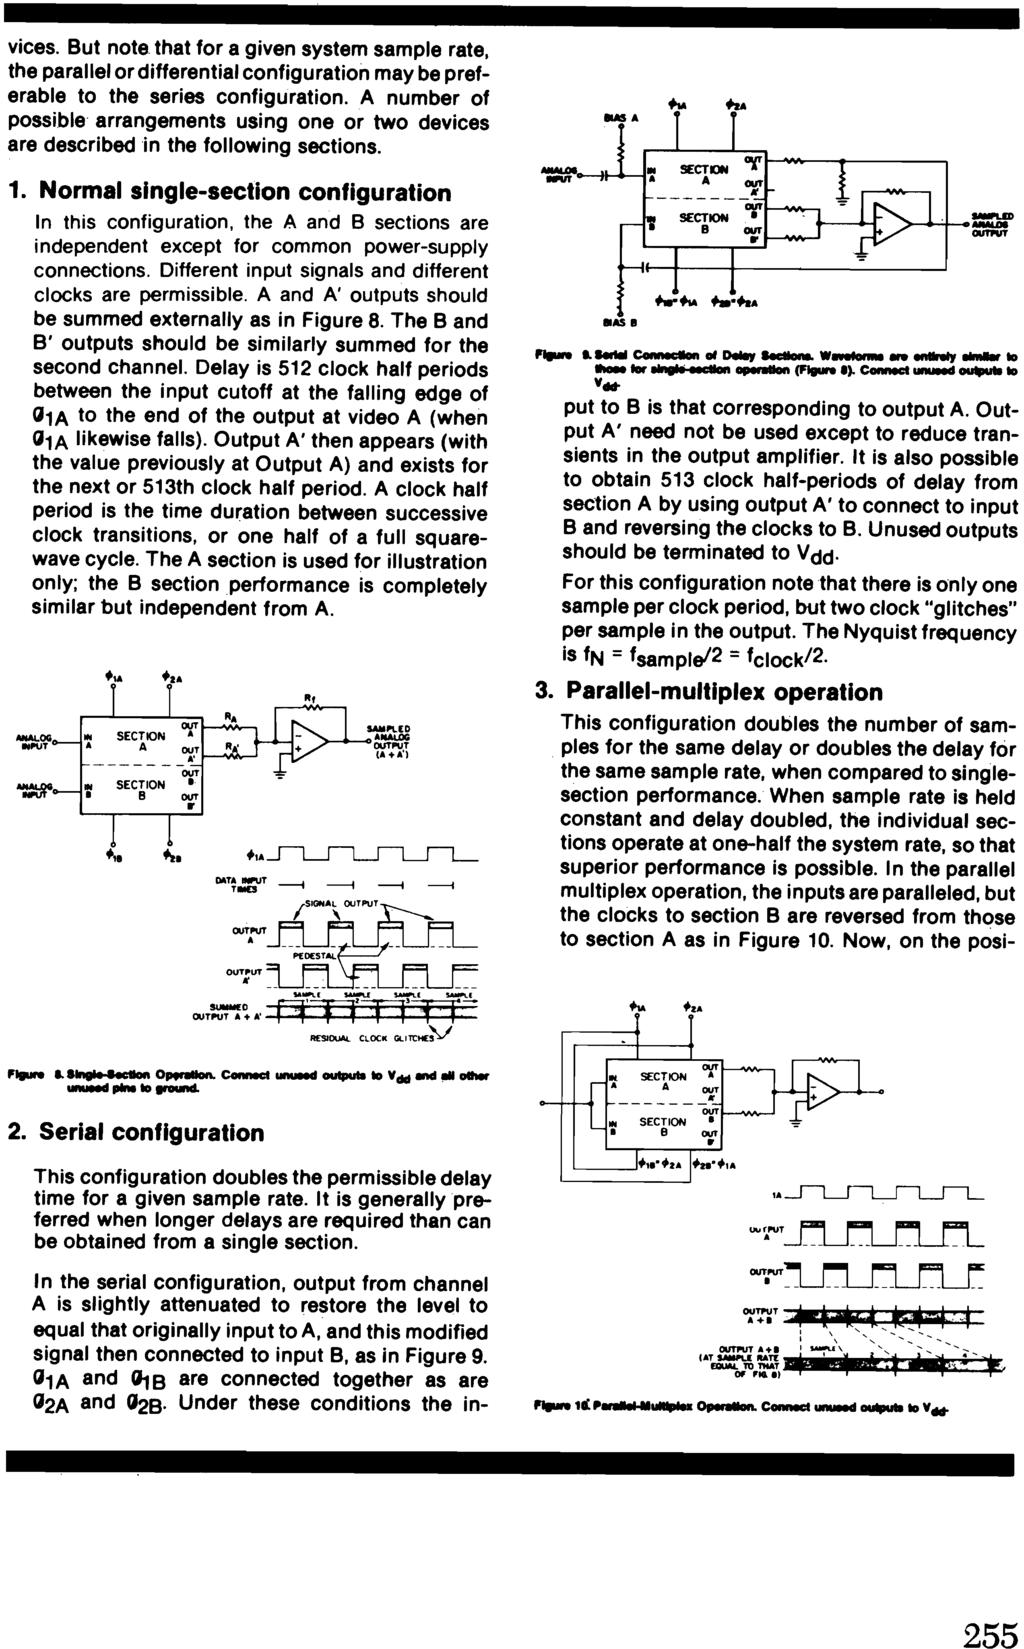 Electronic Music Circuits Pdf Threephase Rectifier Input Circuit Free 8085 Vices But Note That For A Given System Sample Rate The Perallel Or Differential